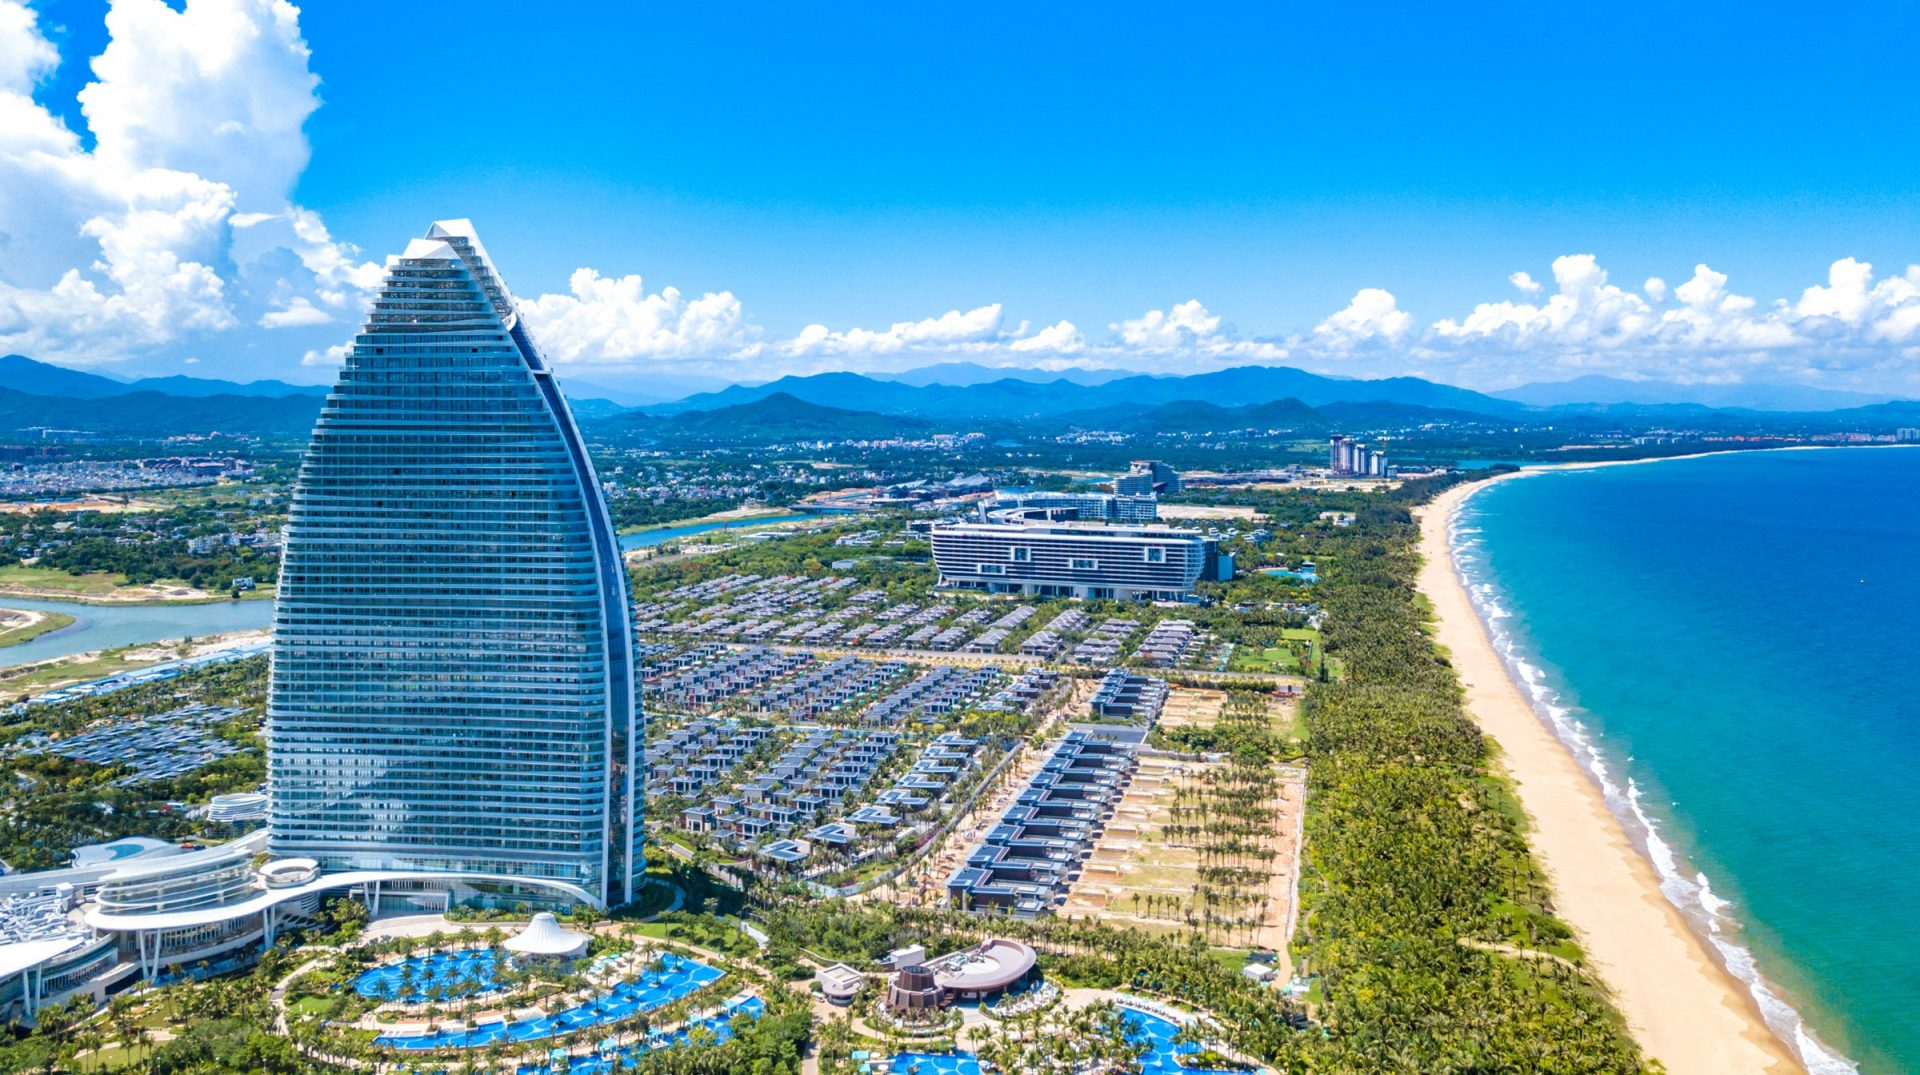 Global Tourism Forum Announced China 2021 to Be Held in May 2021